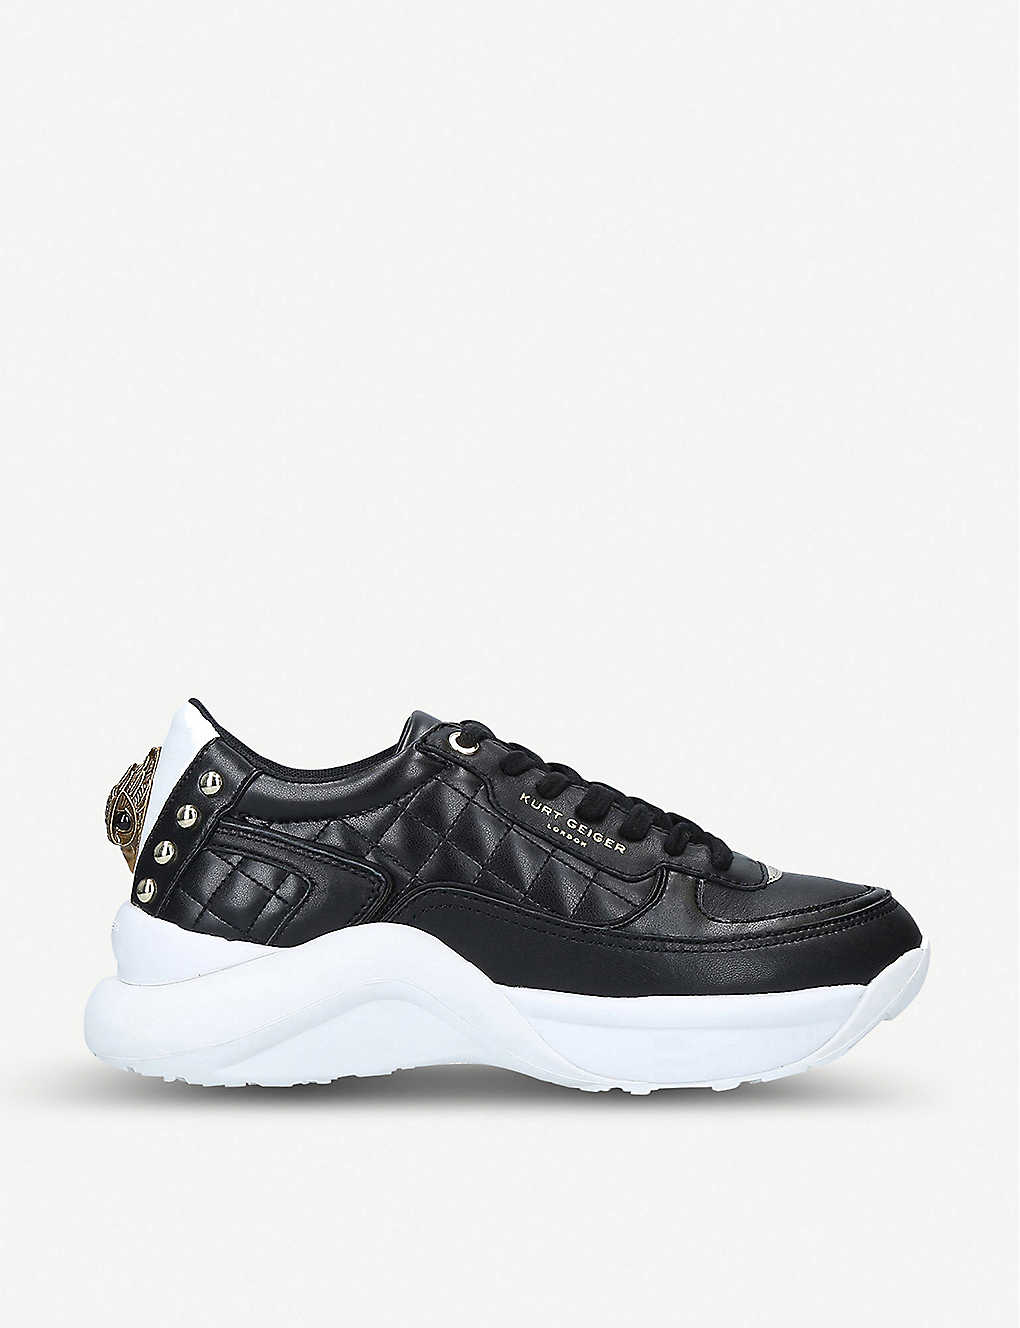 KURT GEIGER LONDON: Lunar Eagle embellished leather trainers